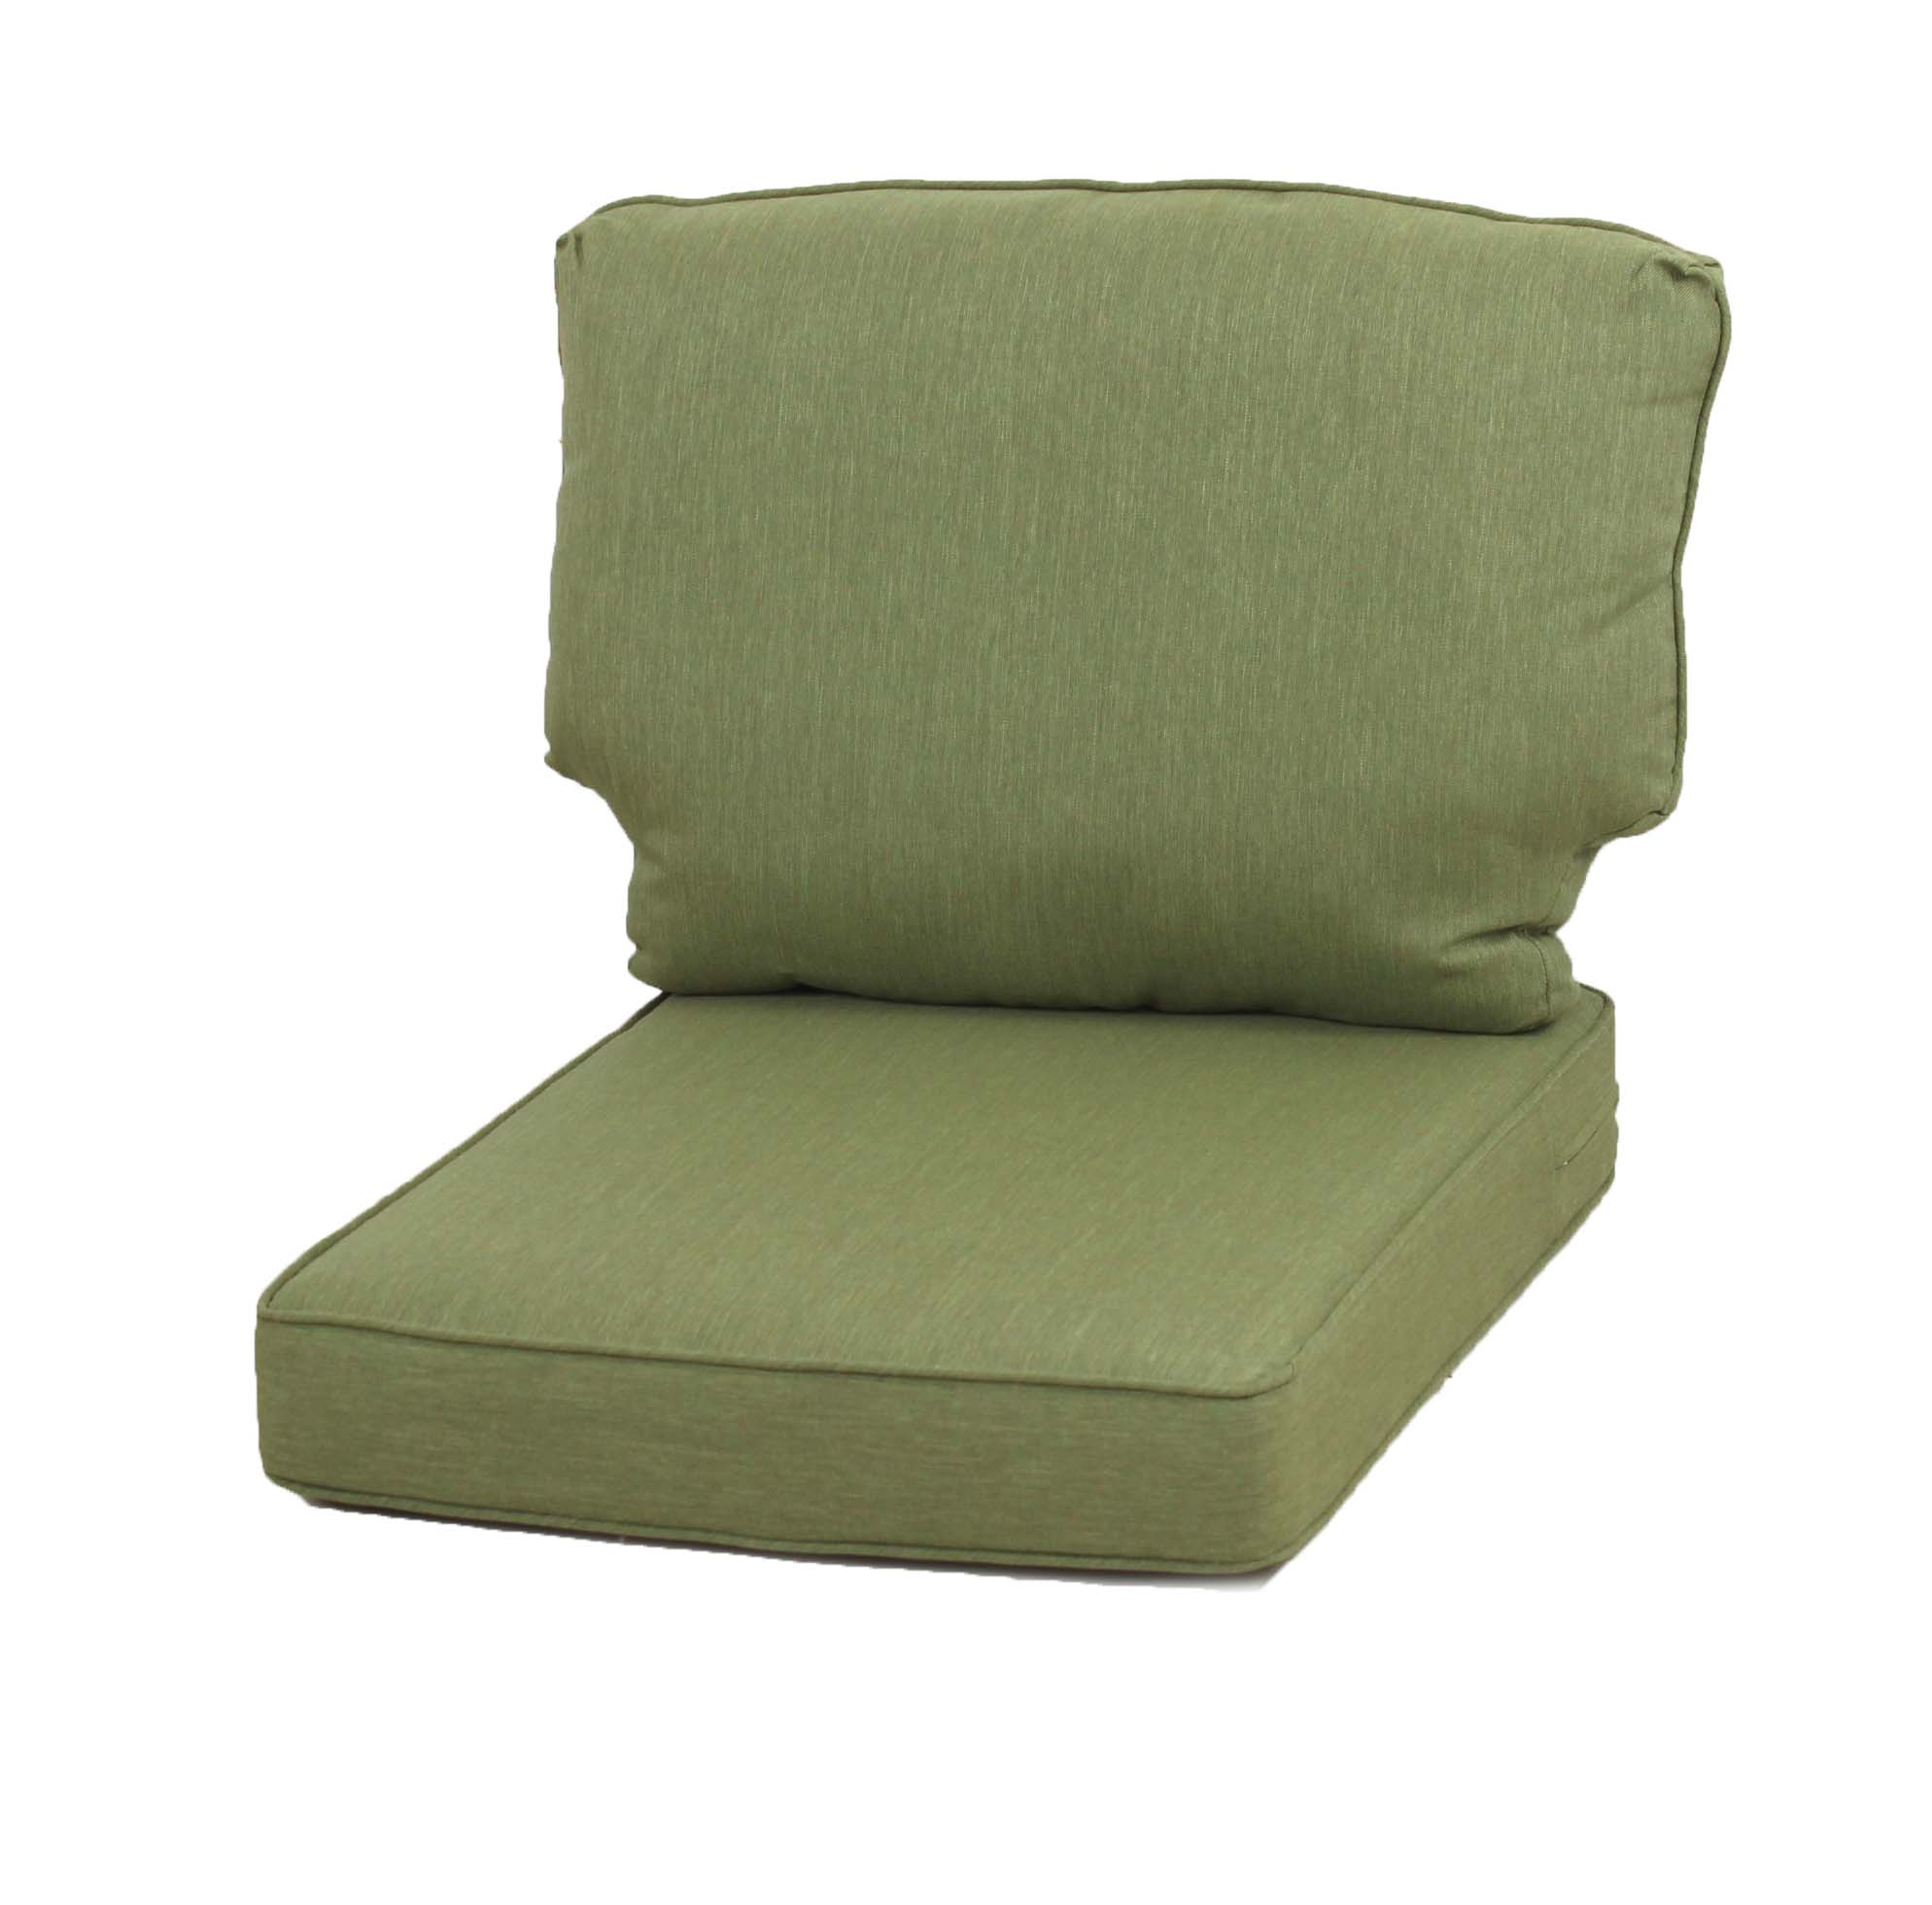 Replacement Cushions For Patio Chairs Ty Pennington Style Parkside Replacement Patio Seating